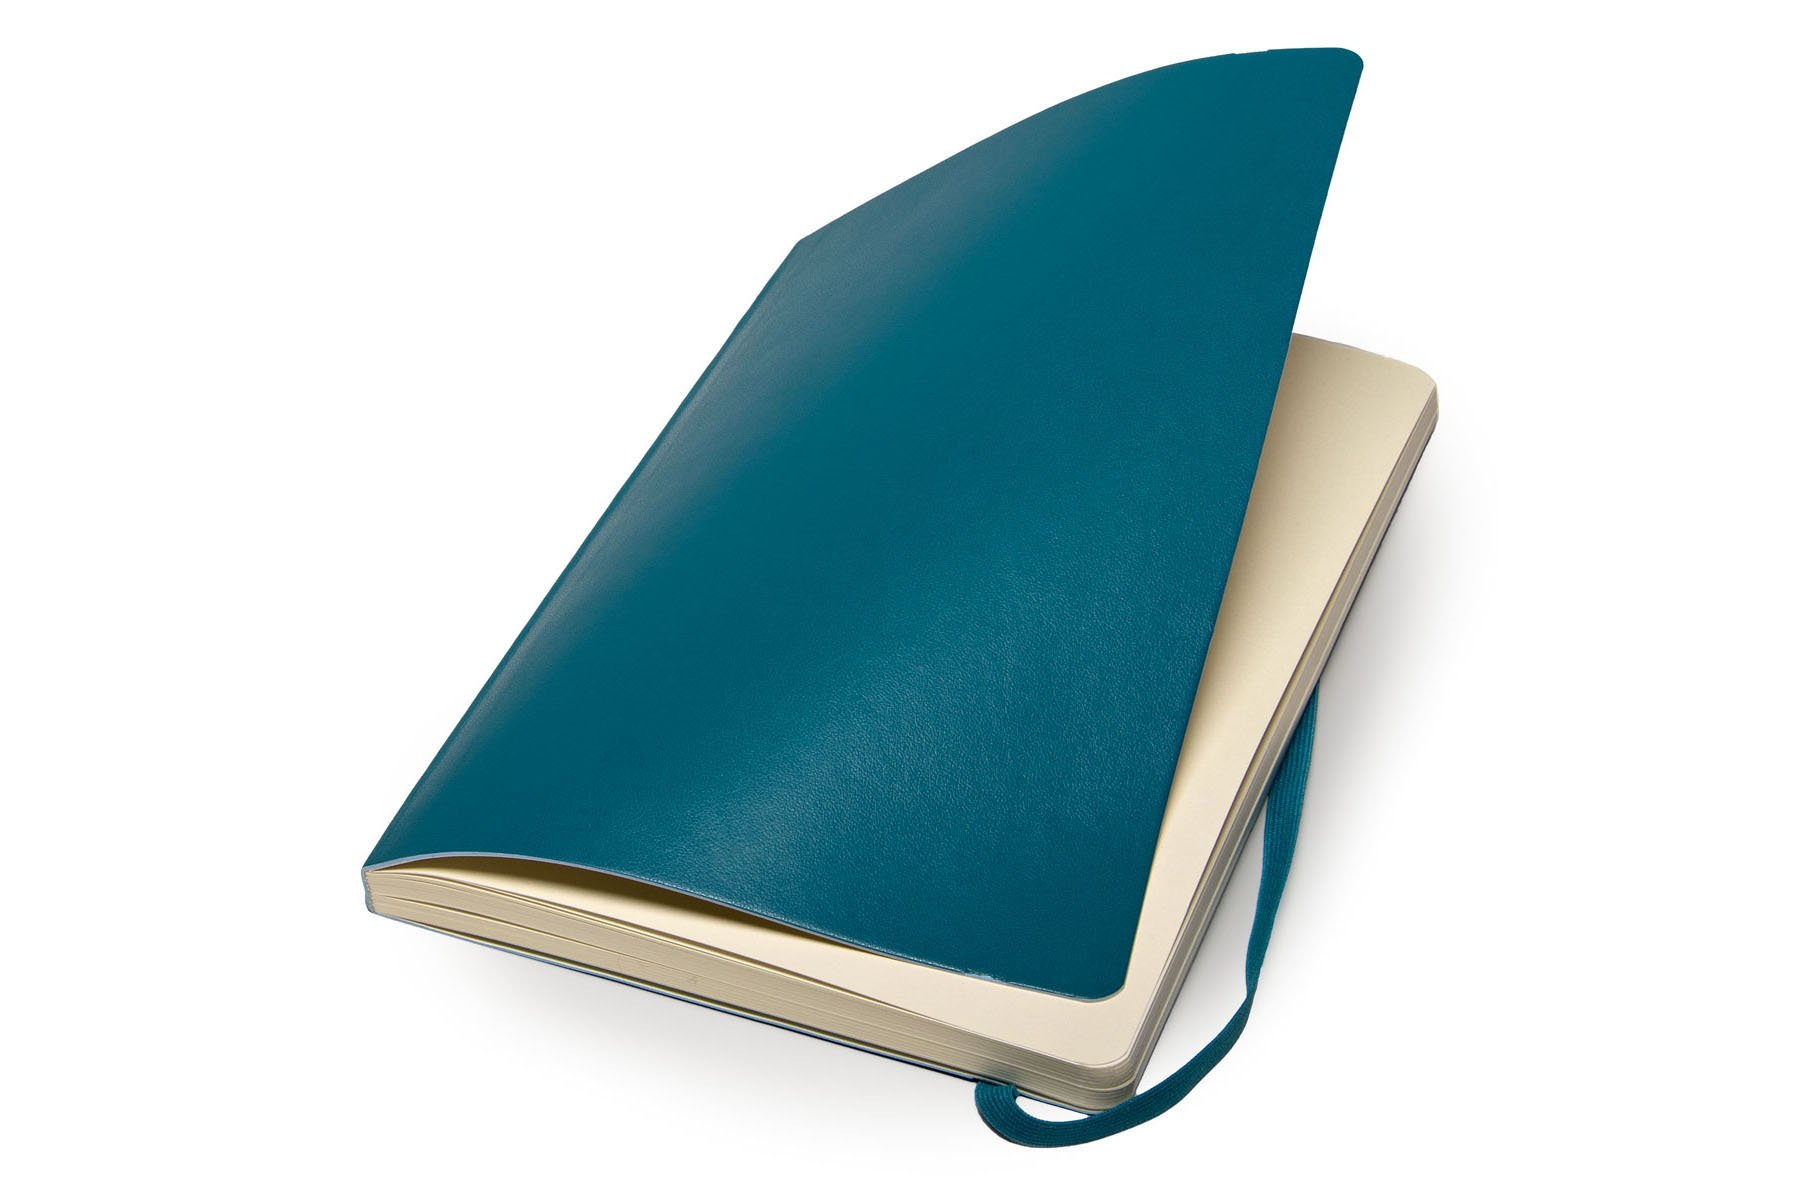 Moleskine Classic Notebook Large (5 x 8.25''), Dotted Pages, Underwater Blue, Soft Cover Notebook for Writing, Sketching, Journals by Ingramcontent (Image #3)